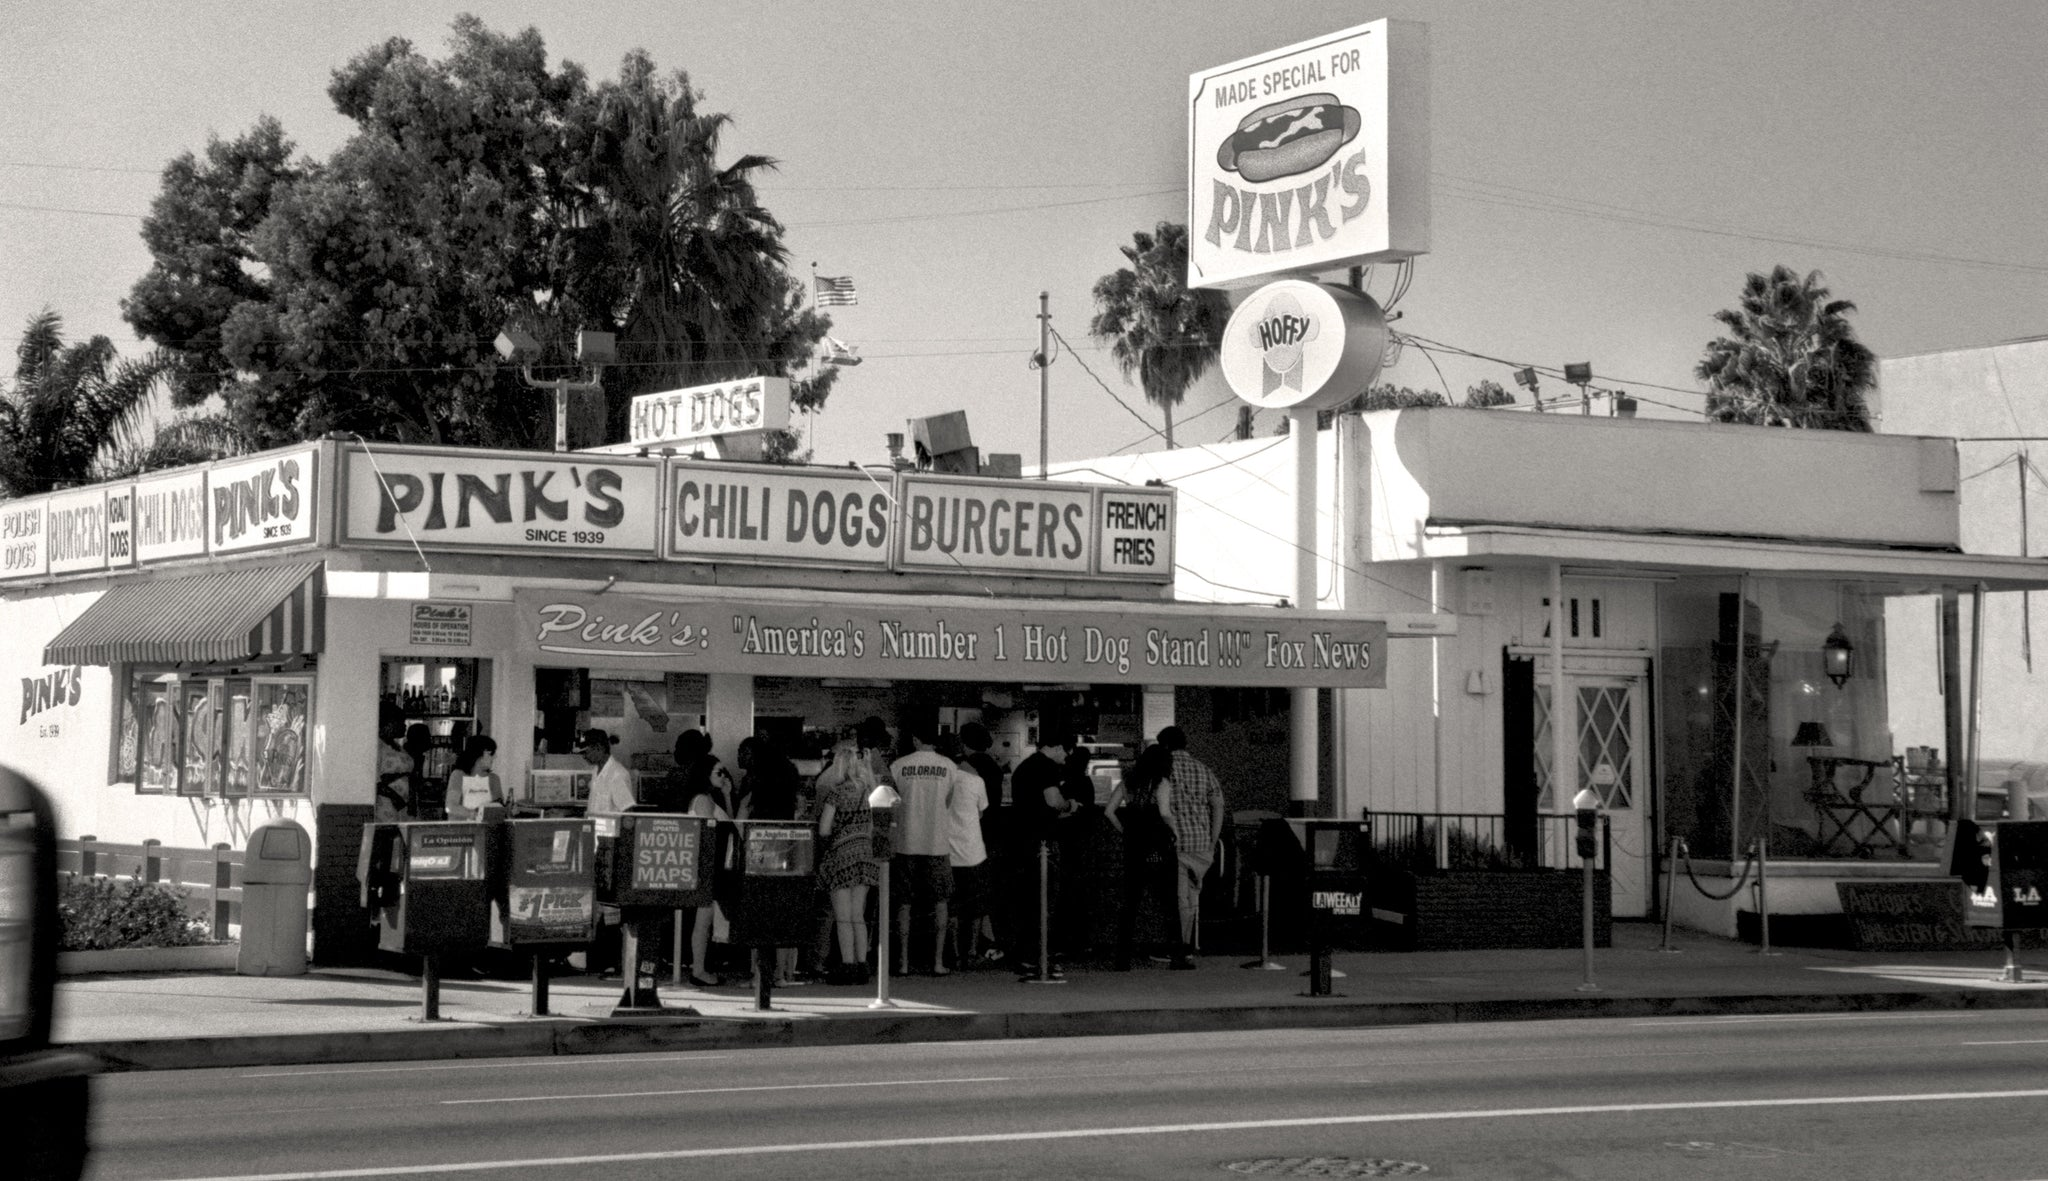 Pinks hot dog stand los angeles california black and white photo